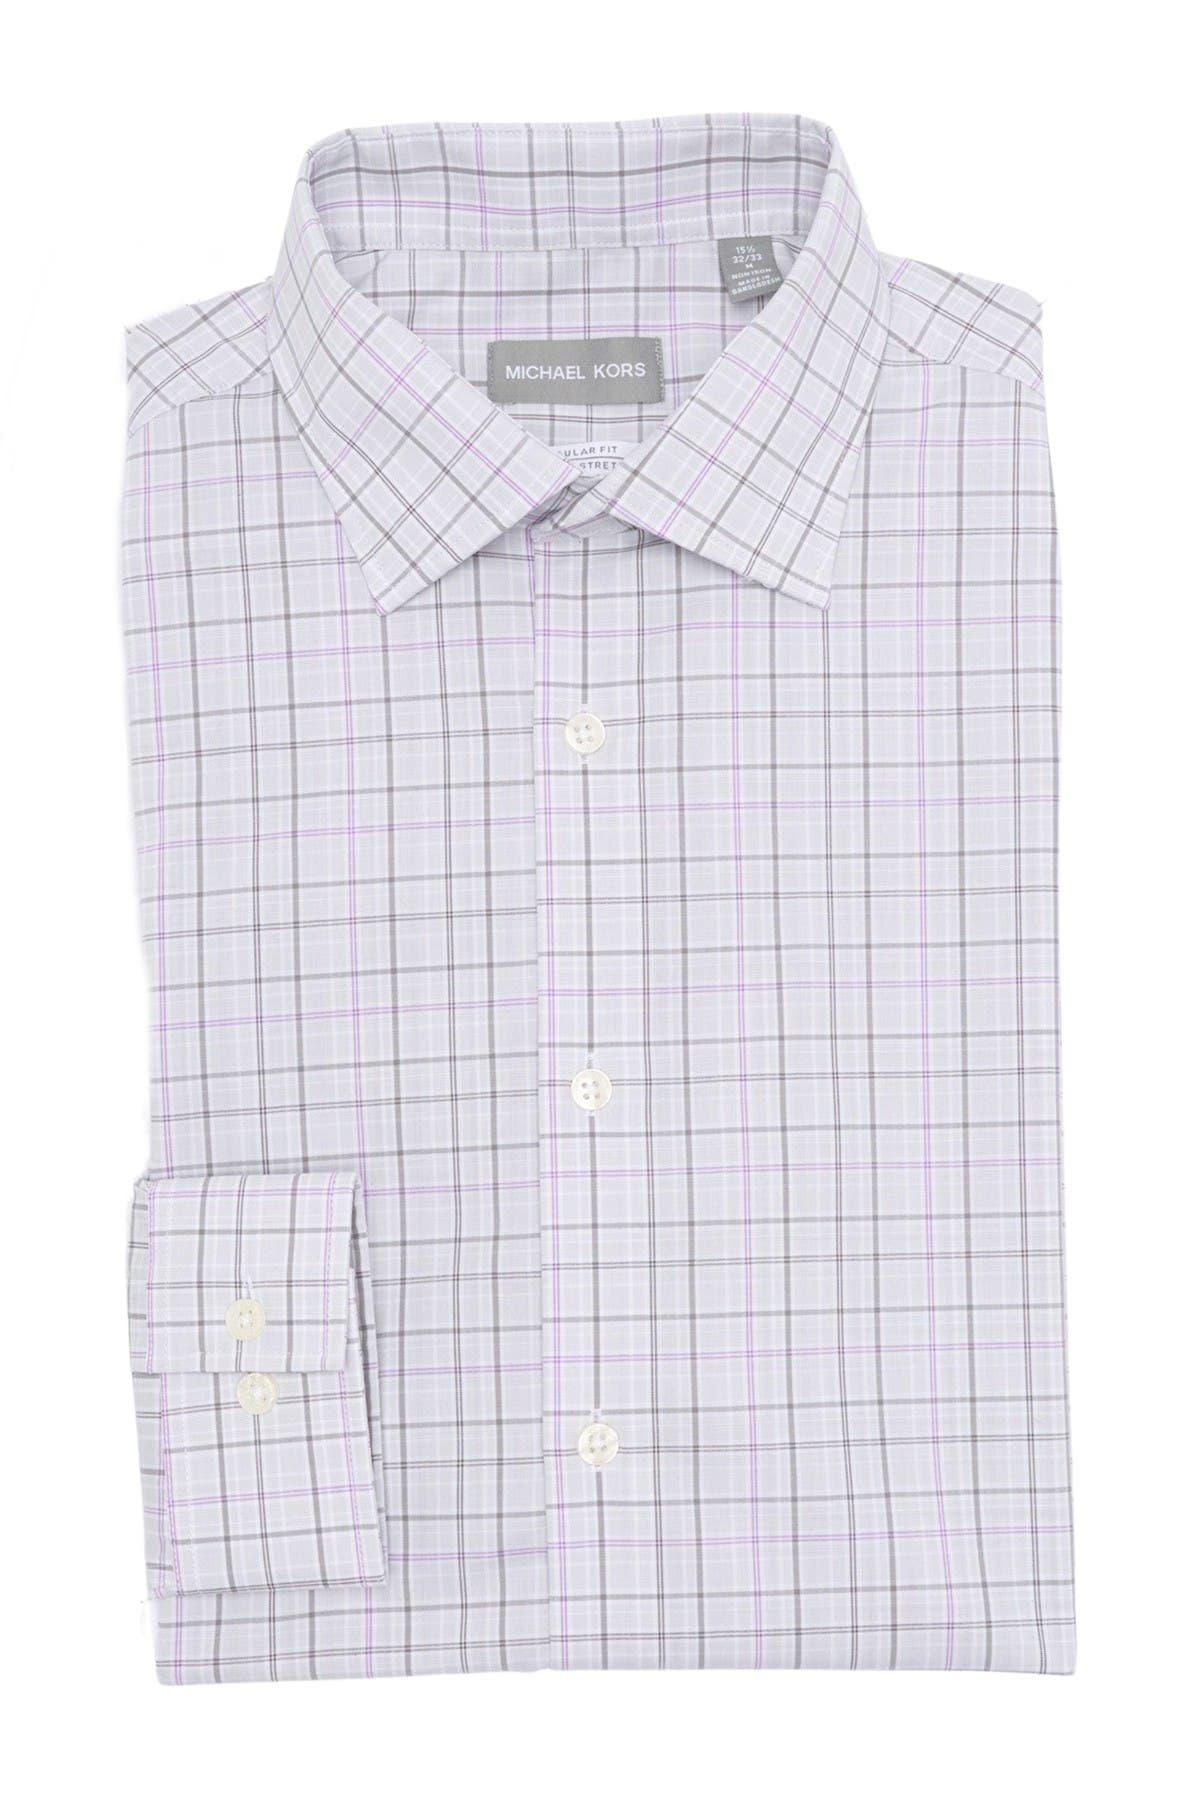 Image of MICHAEL Michael Kors Check Print Regular Fit Shirt